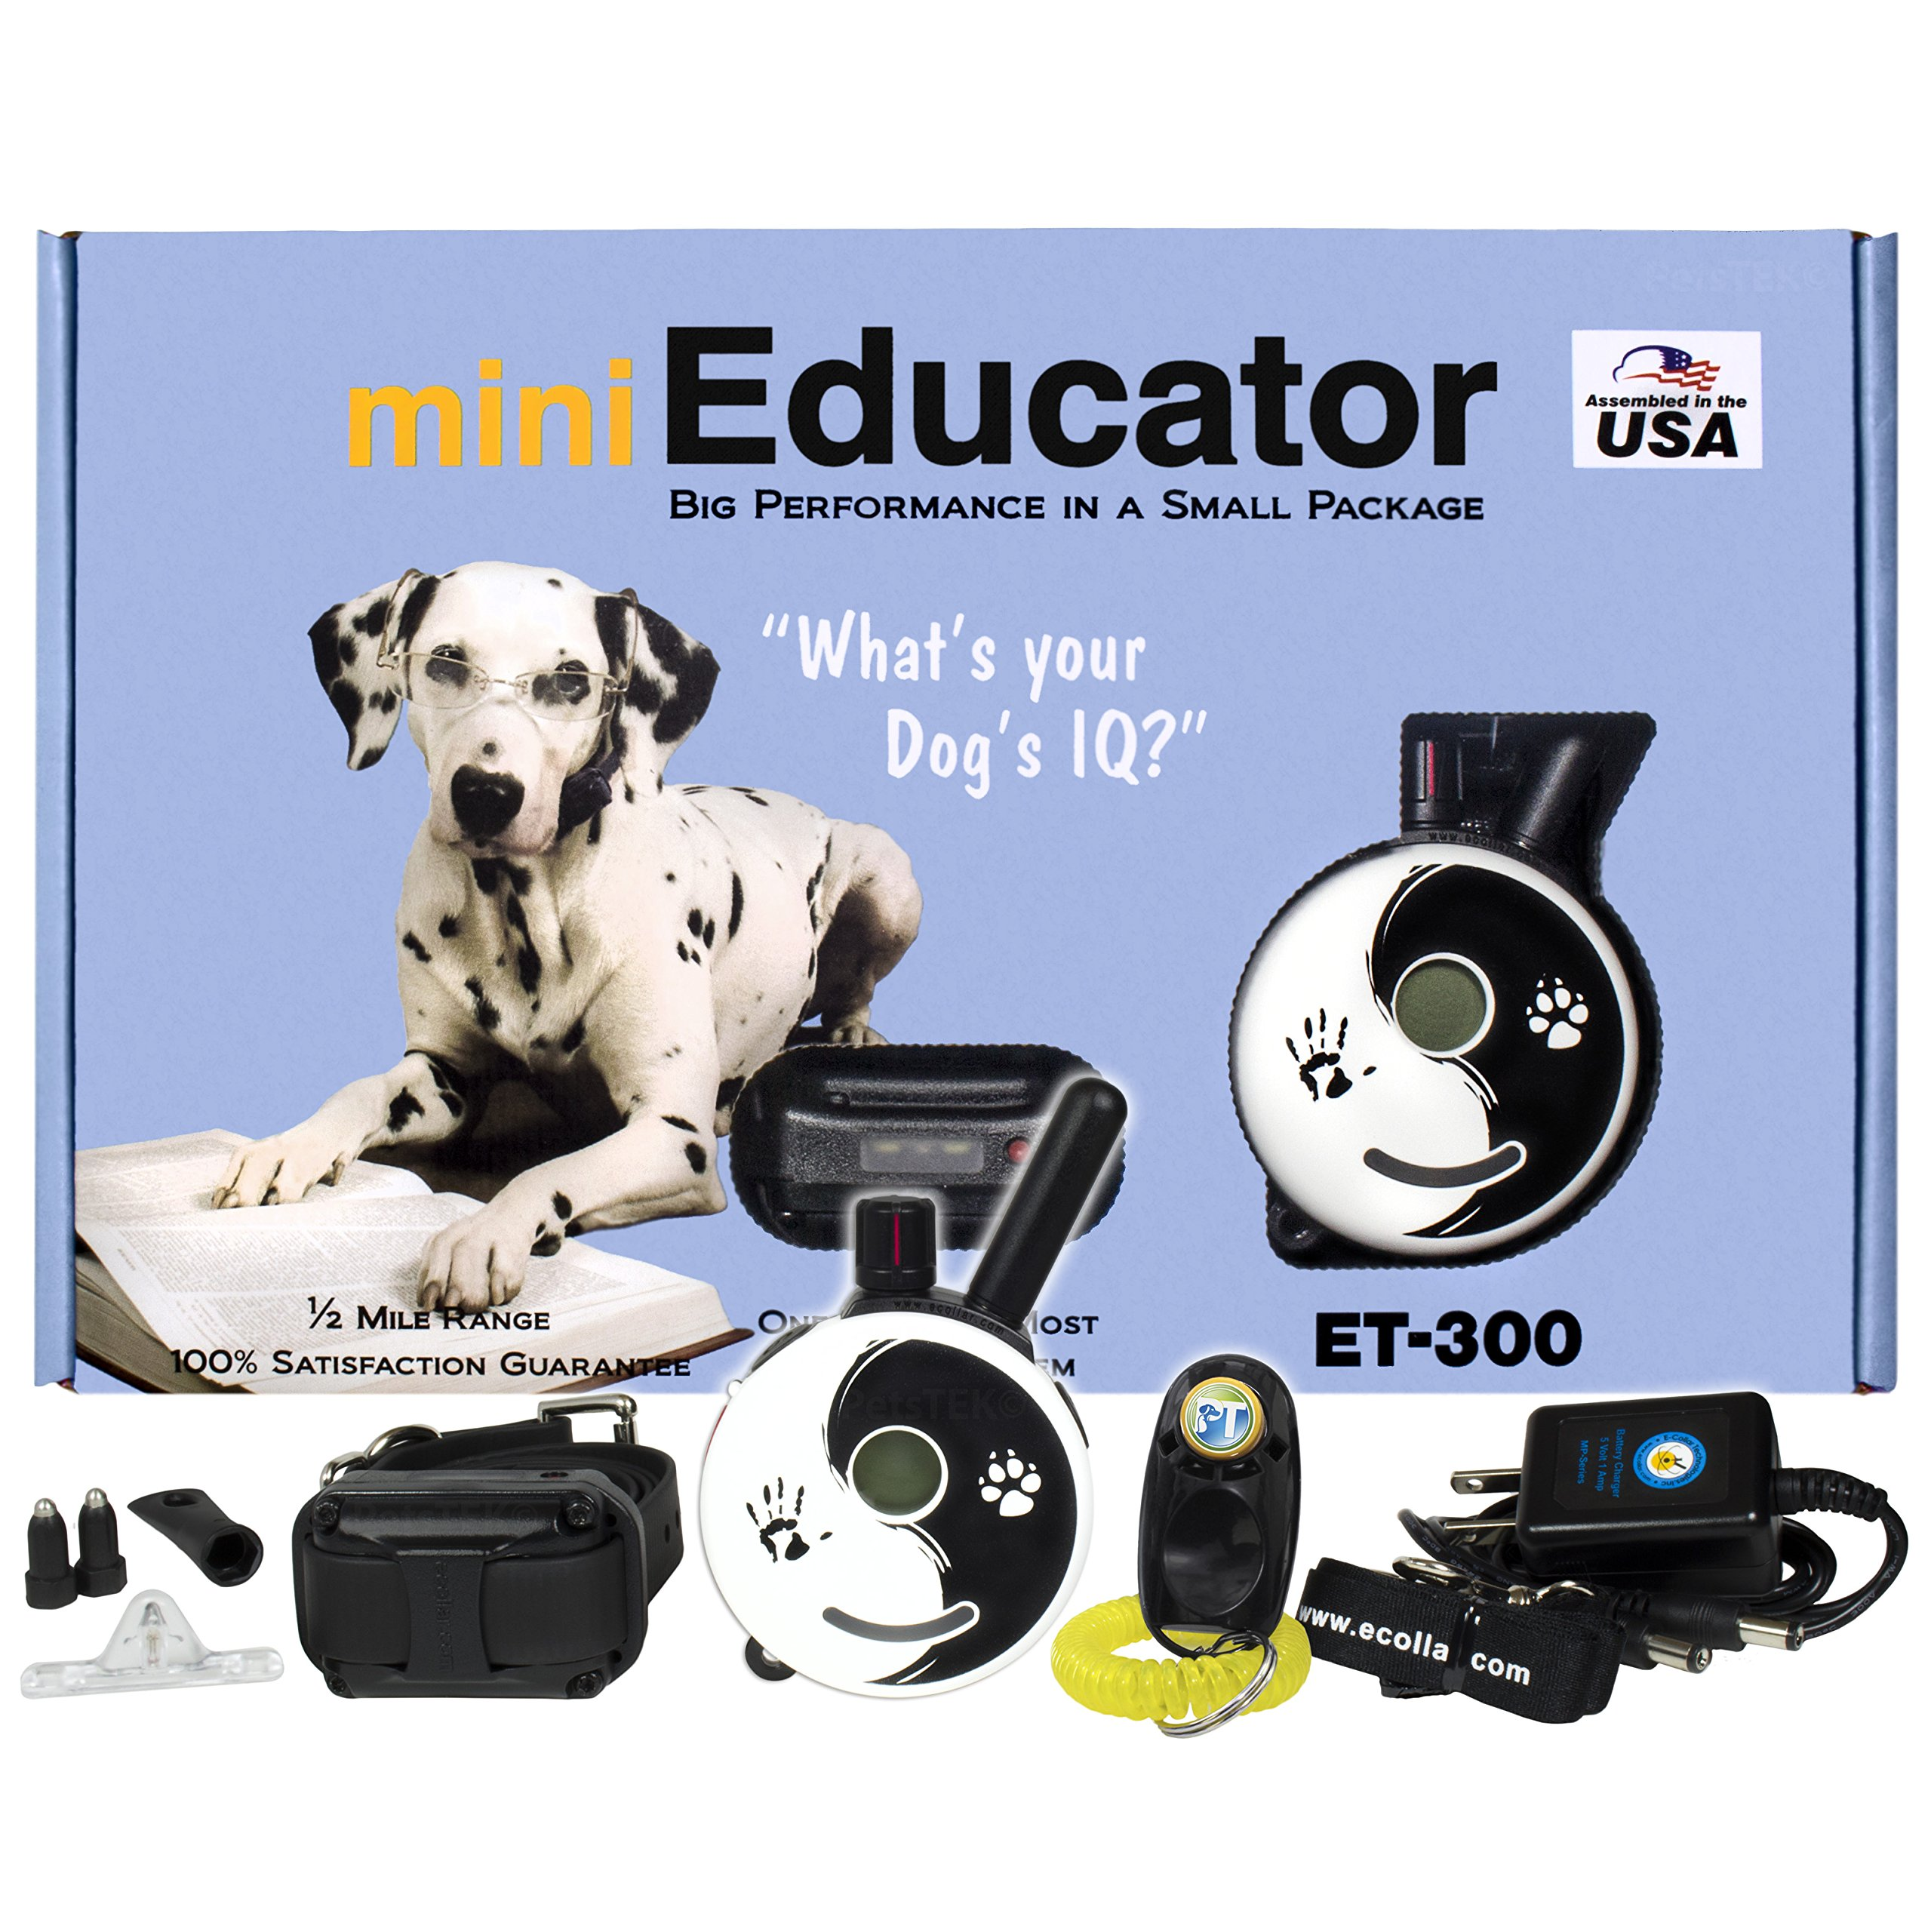 E-Collar - ET-300ZEN - 1/2 Mile Remote Waterproof Trainer Mini Educator - Static, Vibration and Sound Stimulation Collar with PetsTEK Dog Training Clicker by Ecollar